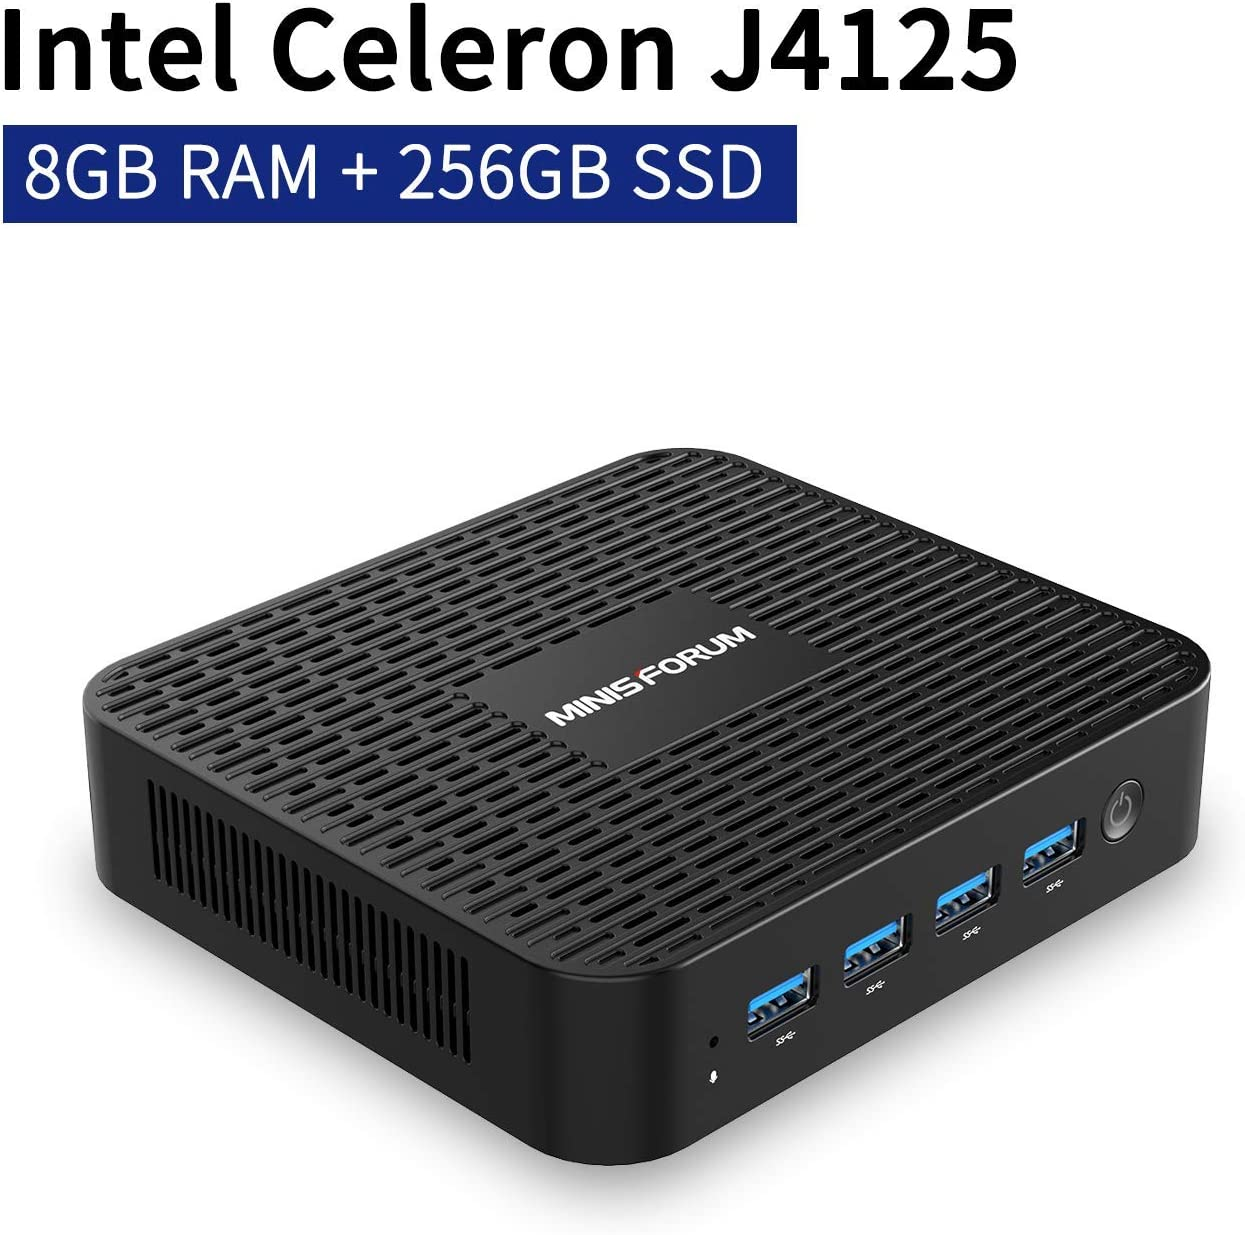 Mini PC Windows 10 Pro 8GB LPDDR4 256GB SSD Intel Celeron J4125(up to 2.7GHz), Quad Core, HDMI&DP 4K@60Hz Outputs, 2X Gigabit Ethernet, 4X USB 3.0, Dual Band WiFi, Support PXE Boot, Auto Power On